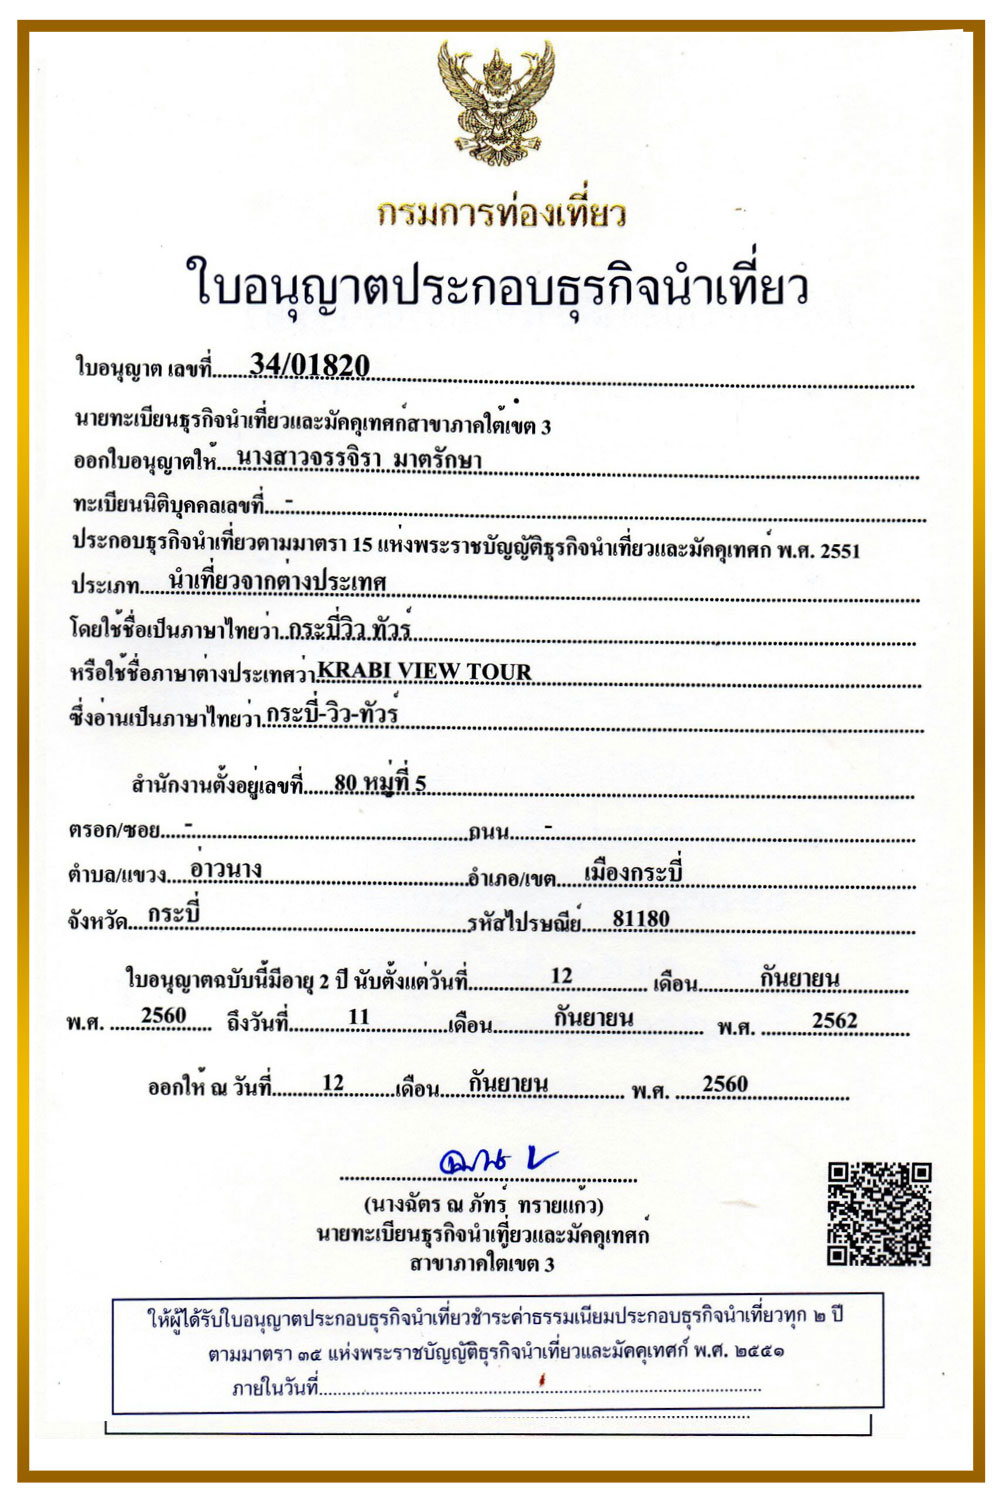 krabi view tour TAT License